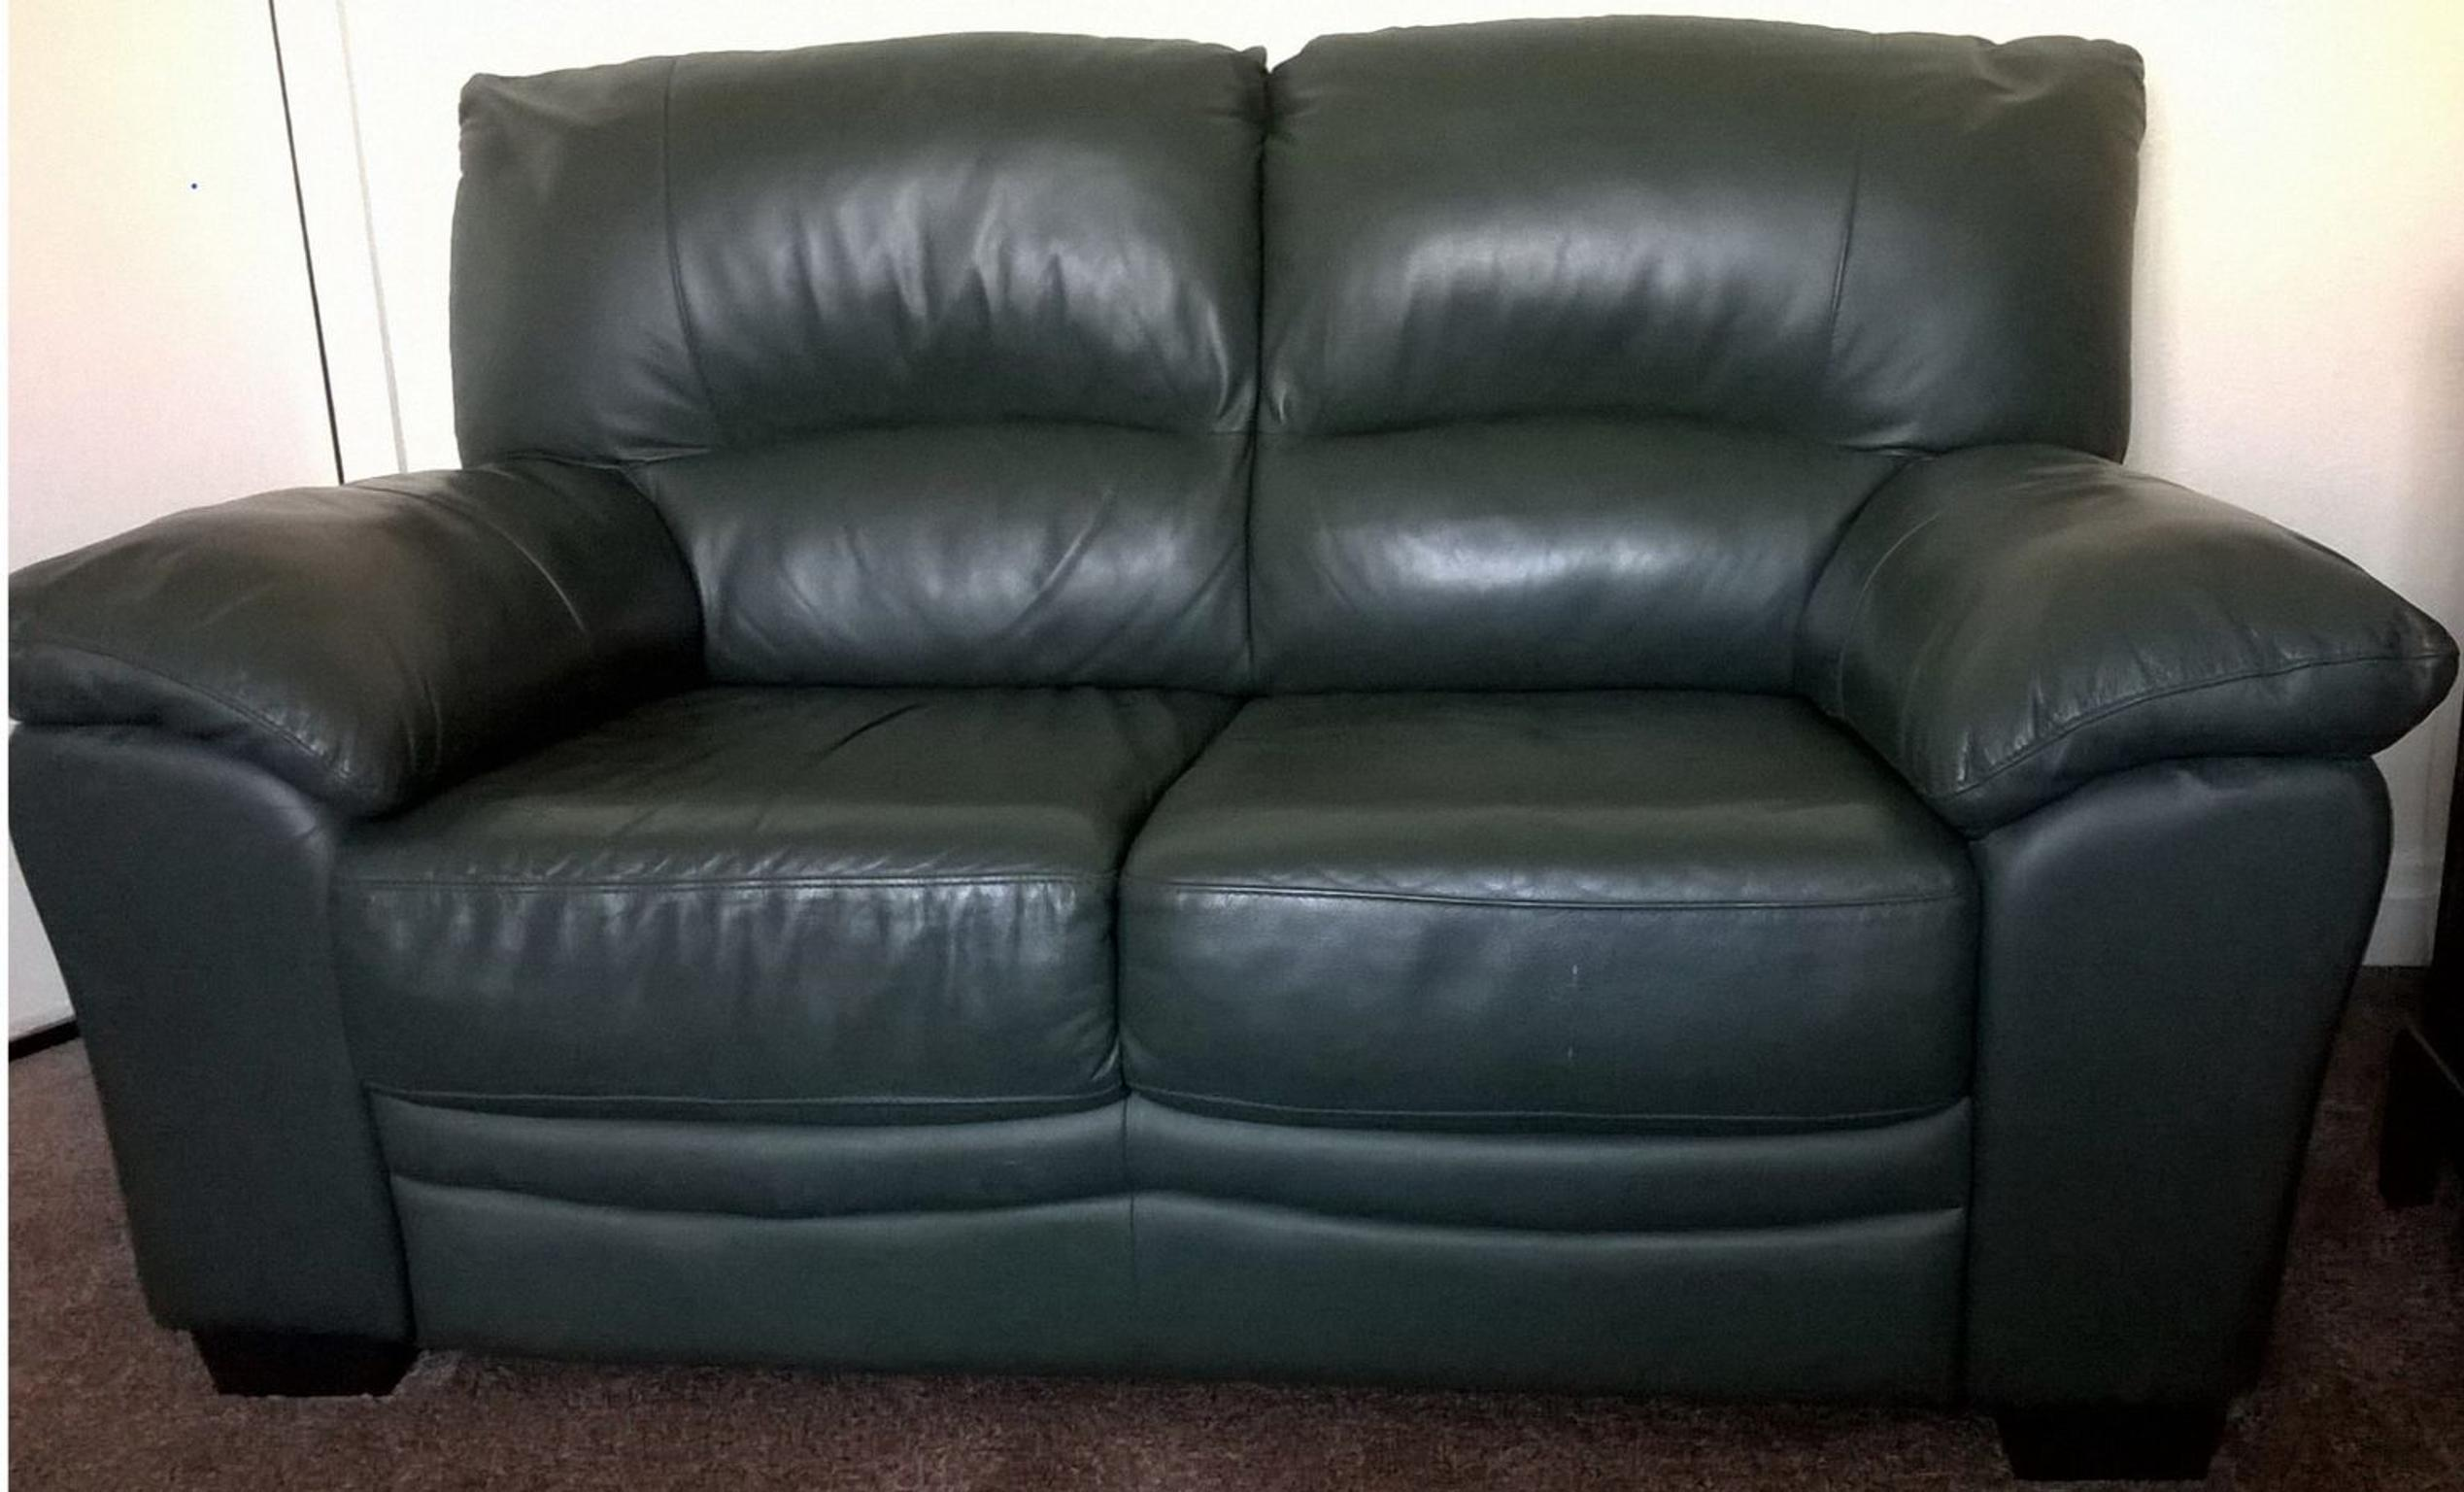 Green Leather Sofa 2 Seater